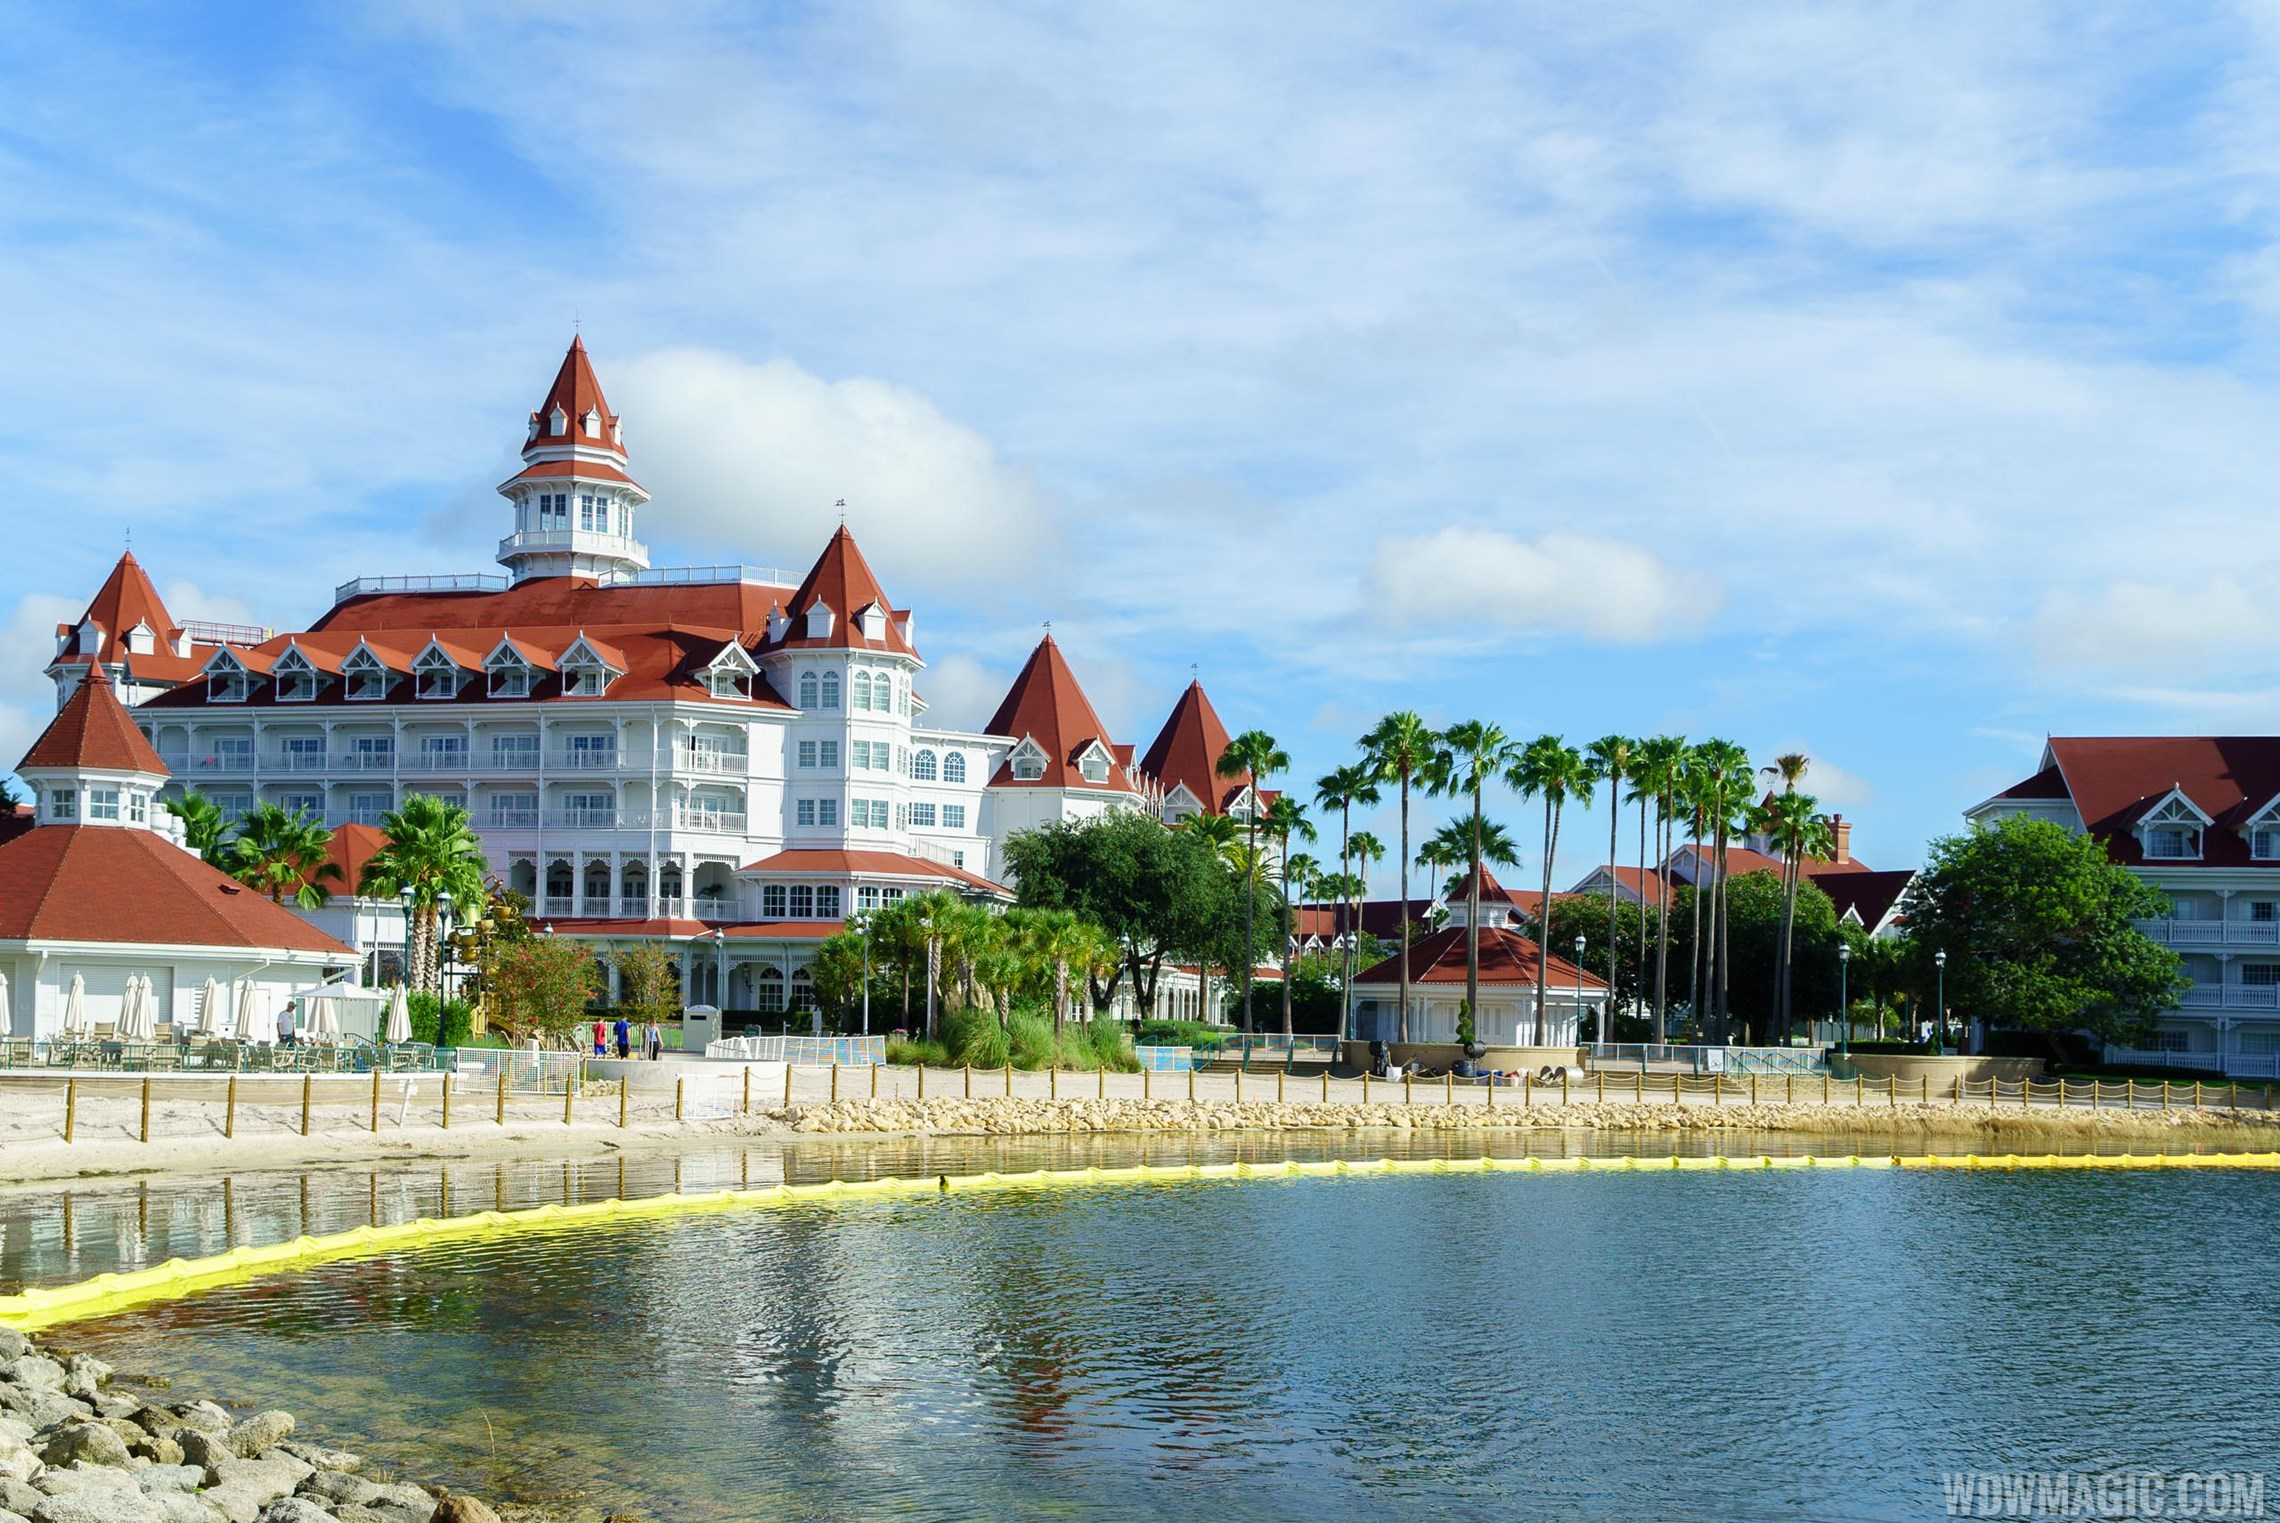 Disney's Magnolia Golf Course is the longest of all of Walt Disney World Resort's courses, and among the longest golf courses in Orlando. With 18 holes of challenging water hazards, specious greens, and inviting fairways, Disney's Magnolia provides a golf experience you won't forget.